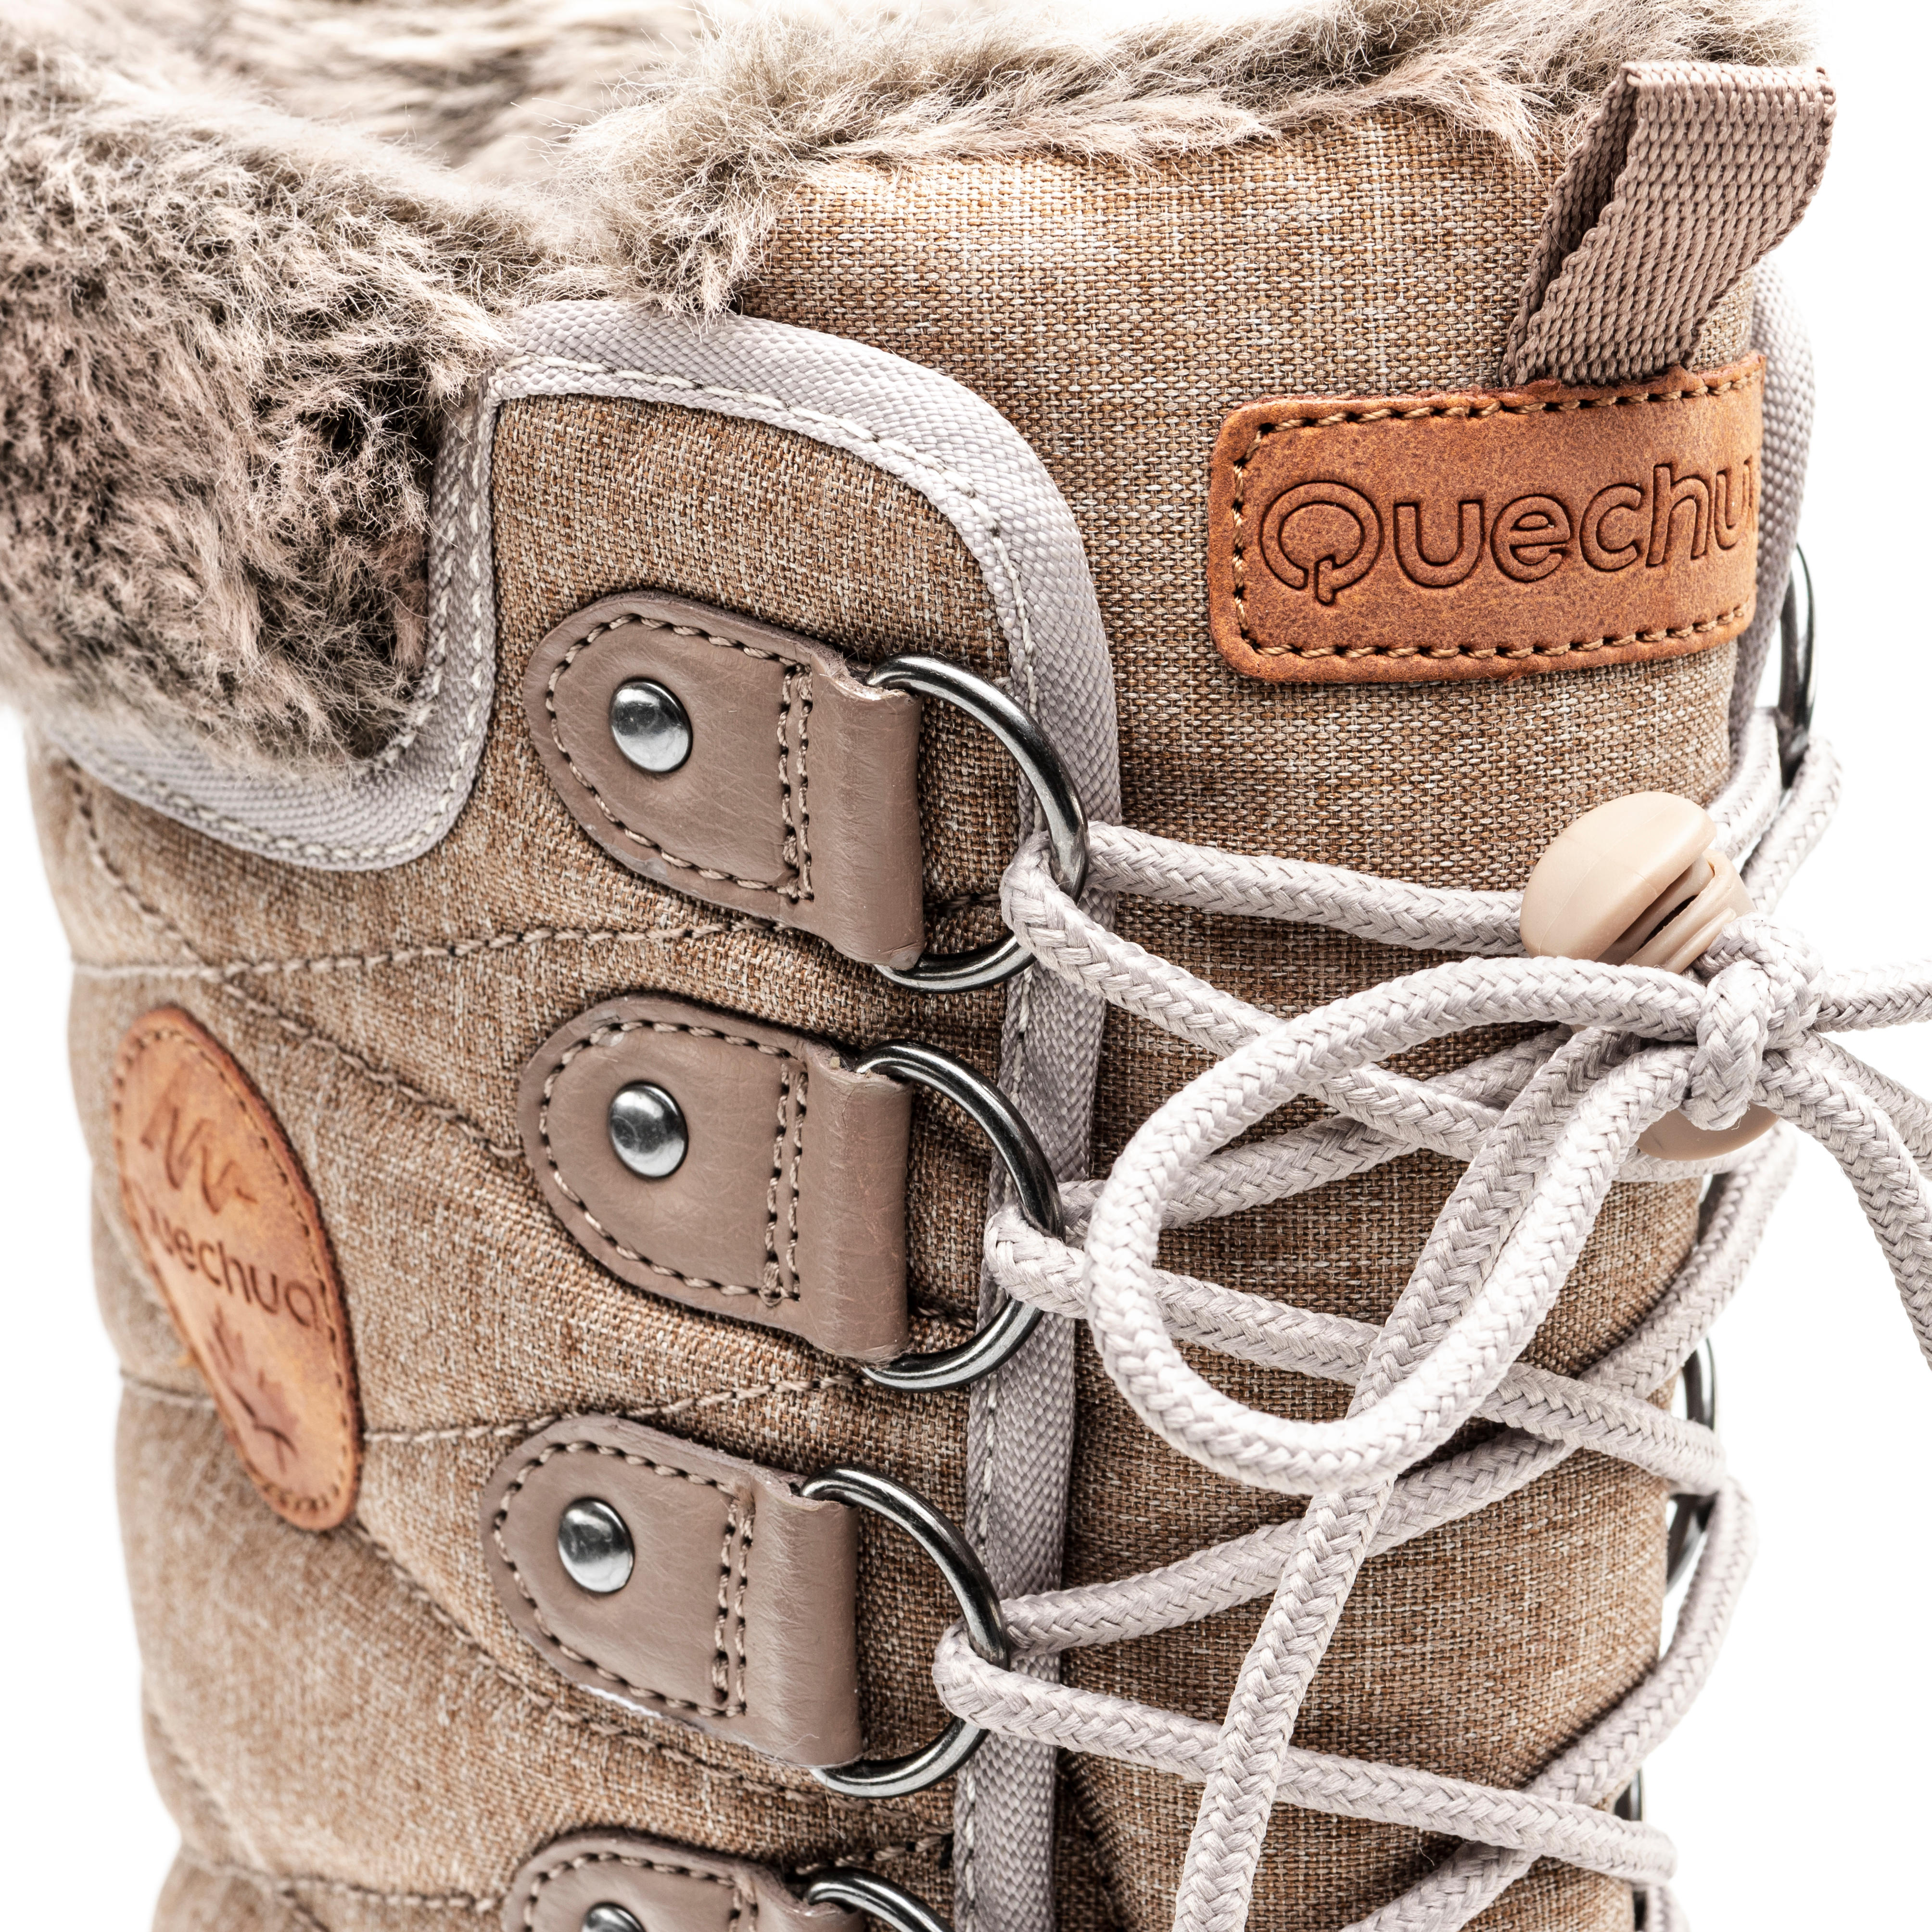 JANA Women's Waterproof and Insulating Snow Boot with Removable Sockliner.